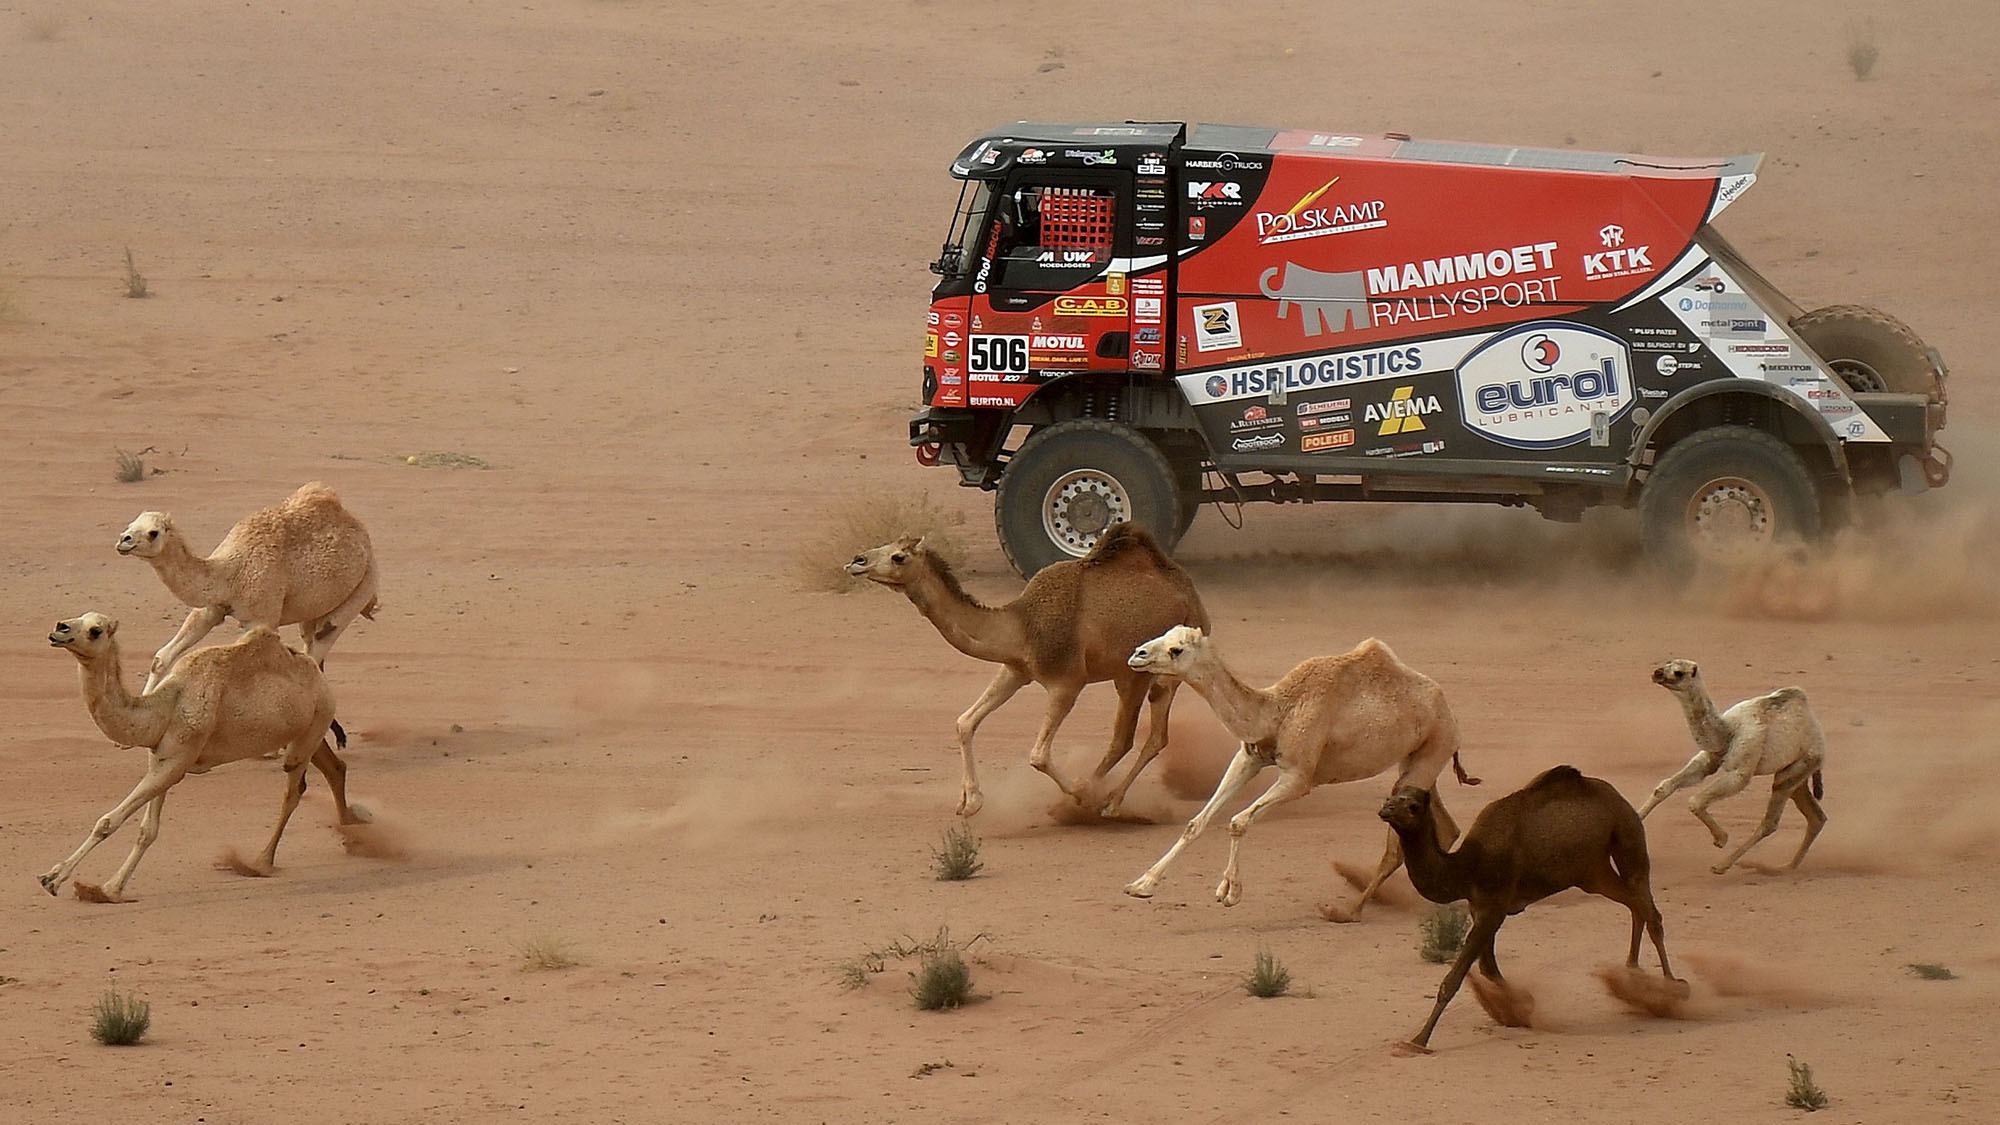 Camels run by as Dutch Renault's trucker Martin Van Den Brink, co-driver Wouter de Graaf and Czech's Daniel Kozlovsky compete during the Stage 10 of the Dakar Rally 2021 between Neom and Alula in Saudi Arabia, on January 13, 2021.